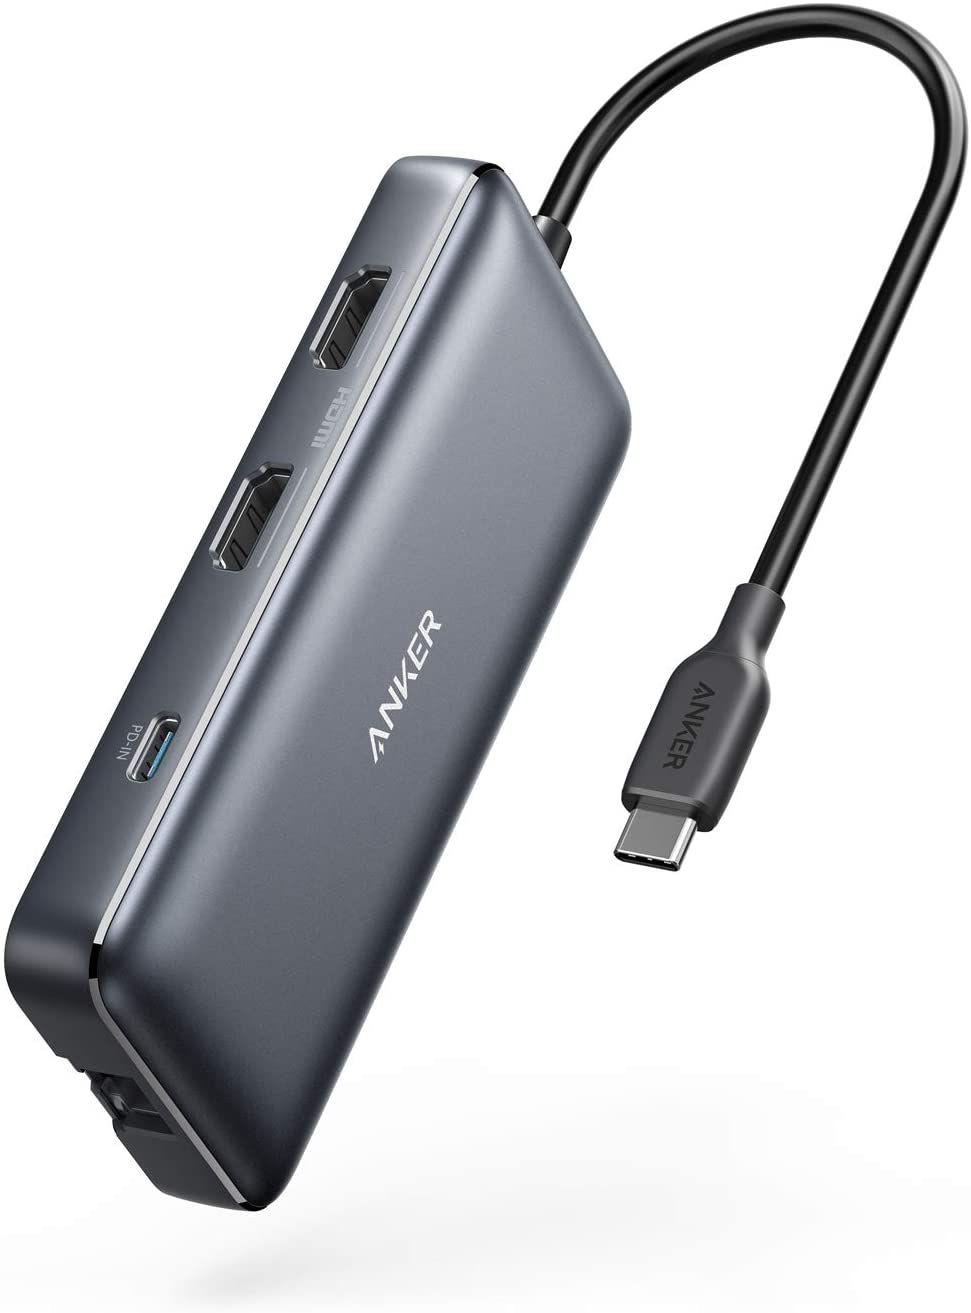 Anker USB C Hub, PowerExpand 8-in-1 USB C Adapter, with Dual 4K HDMI, 100W Power Delivery, 1 Gbps Ethernet, 2 USB 3.0 Data Ports, SD and microSD Card Reader, for MacBook Pro, XPS and More